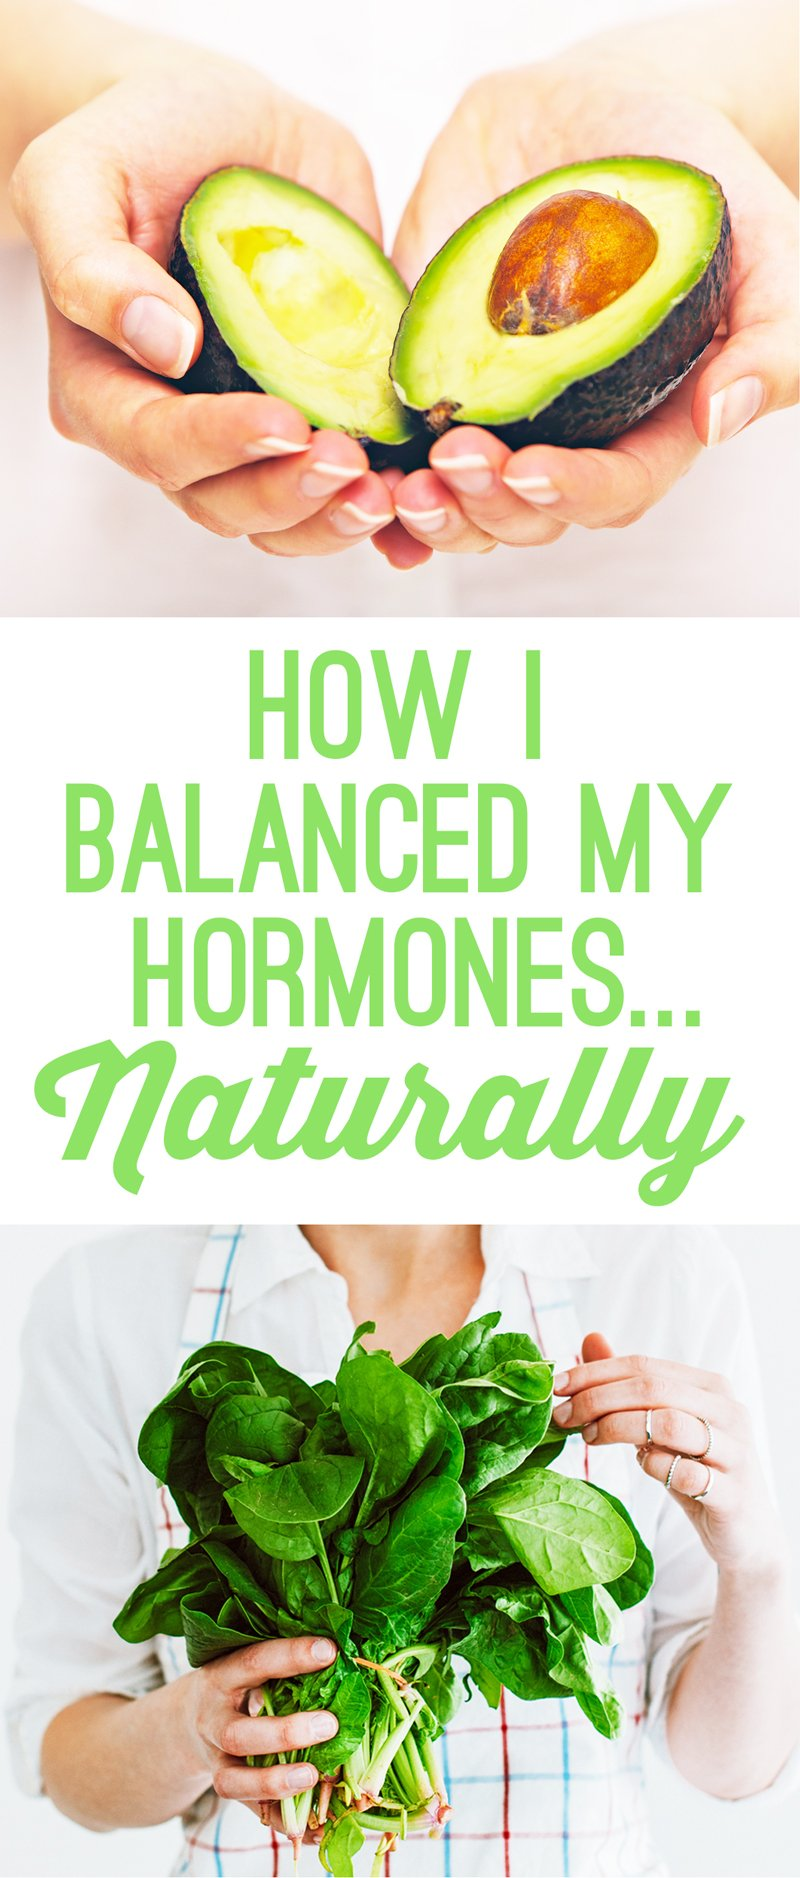 How I Balanced My Hormones Naturally